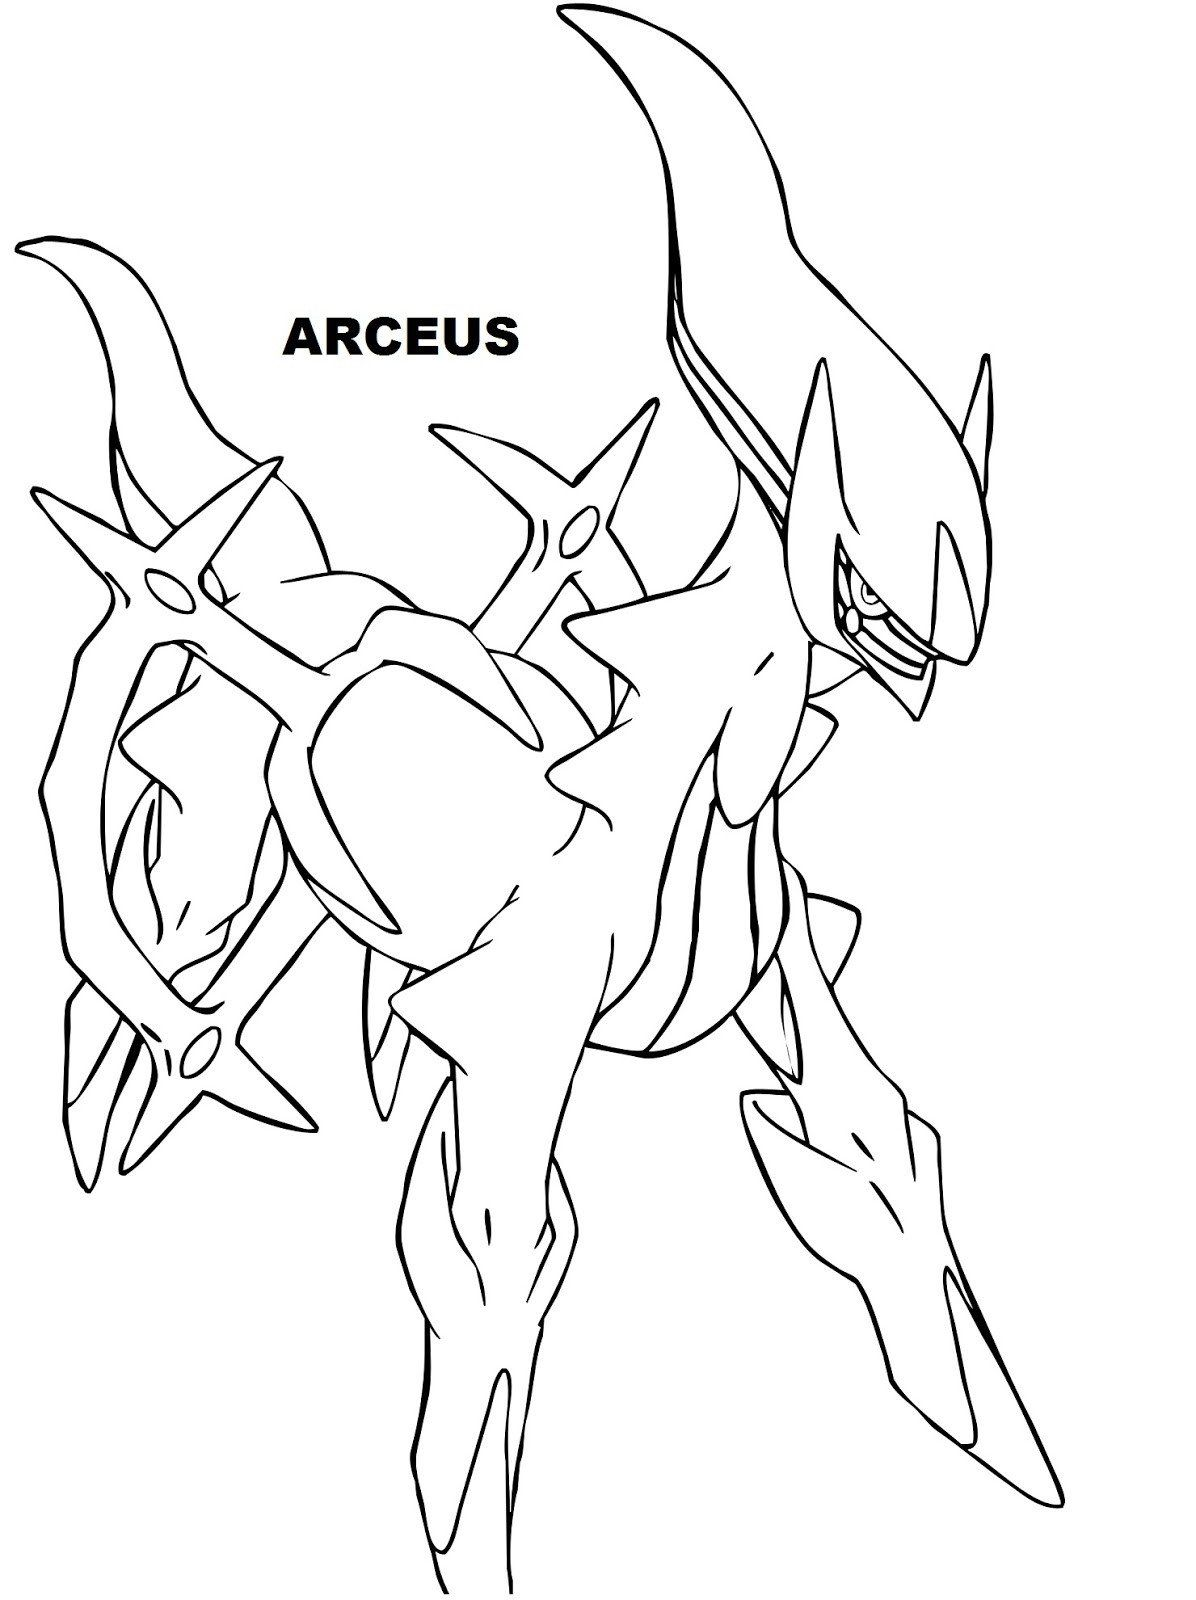 Legendary Pokemon Coloring Pages Free Legendary Pokemon Coloring Pages For Kids In 2020 Pokemon Coloring Pages Coloring Pages For Kids Pokemon Coloring